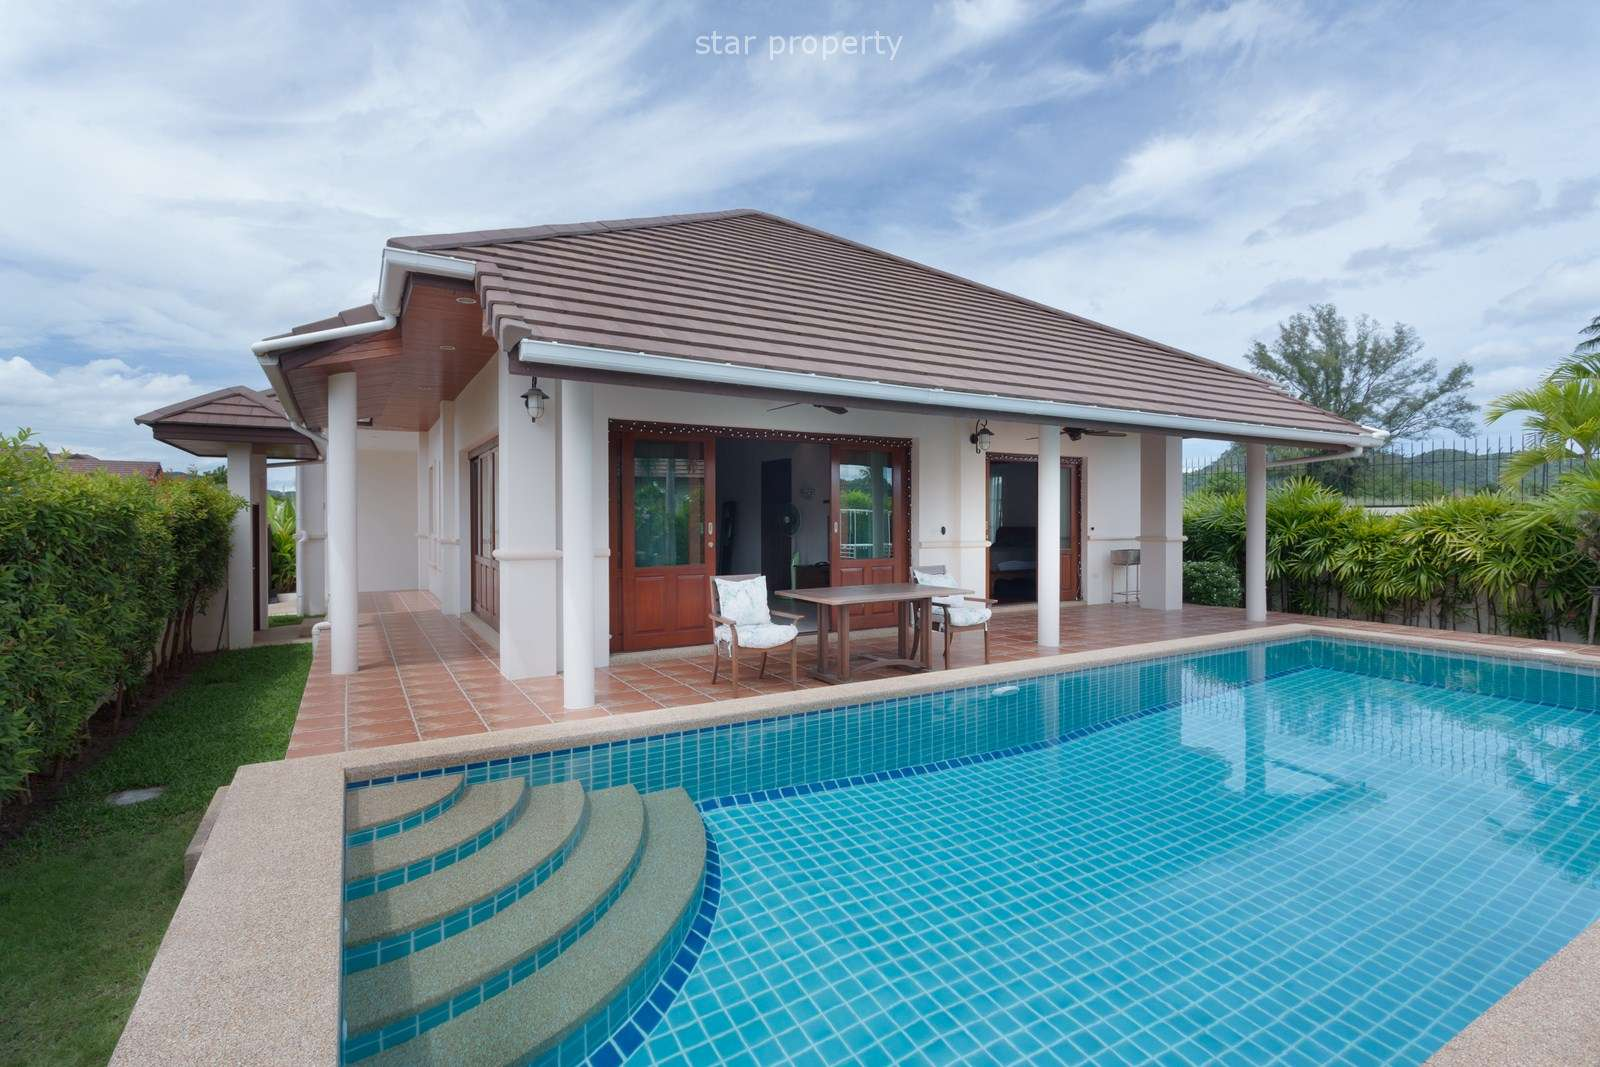 3 Bedroom Pool Villa at Hillside Hamlet Hua Hin for Sale at Hua Hin District, Prachuap Khiri Khan, Thailand